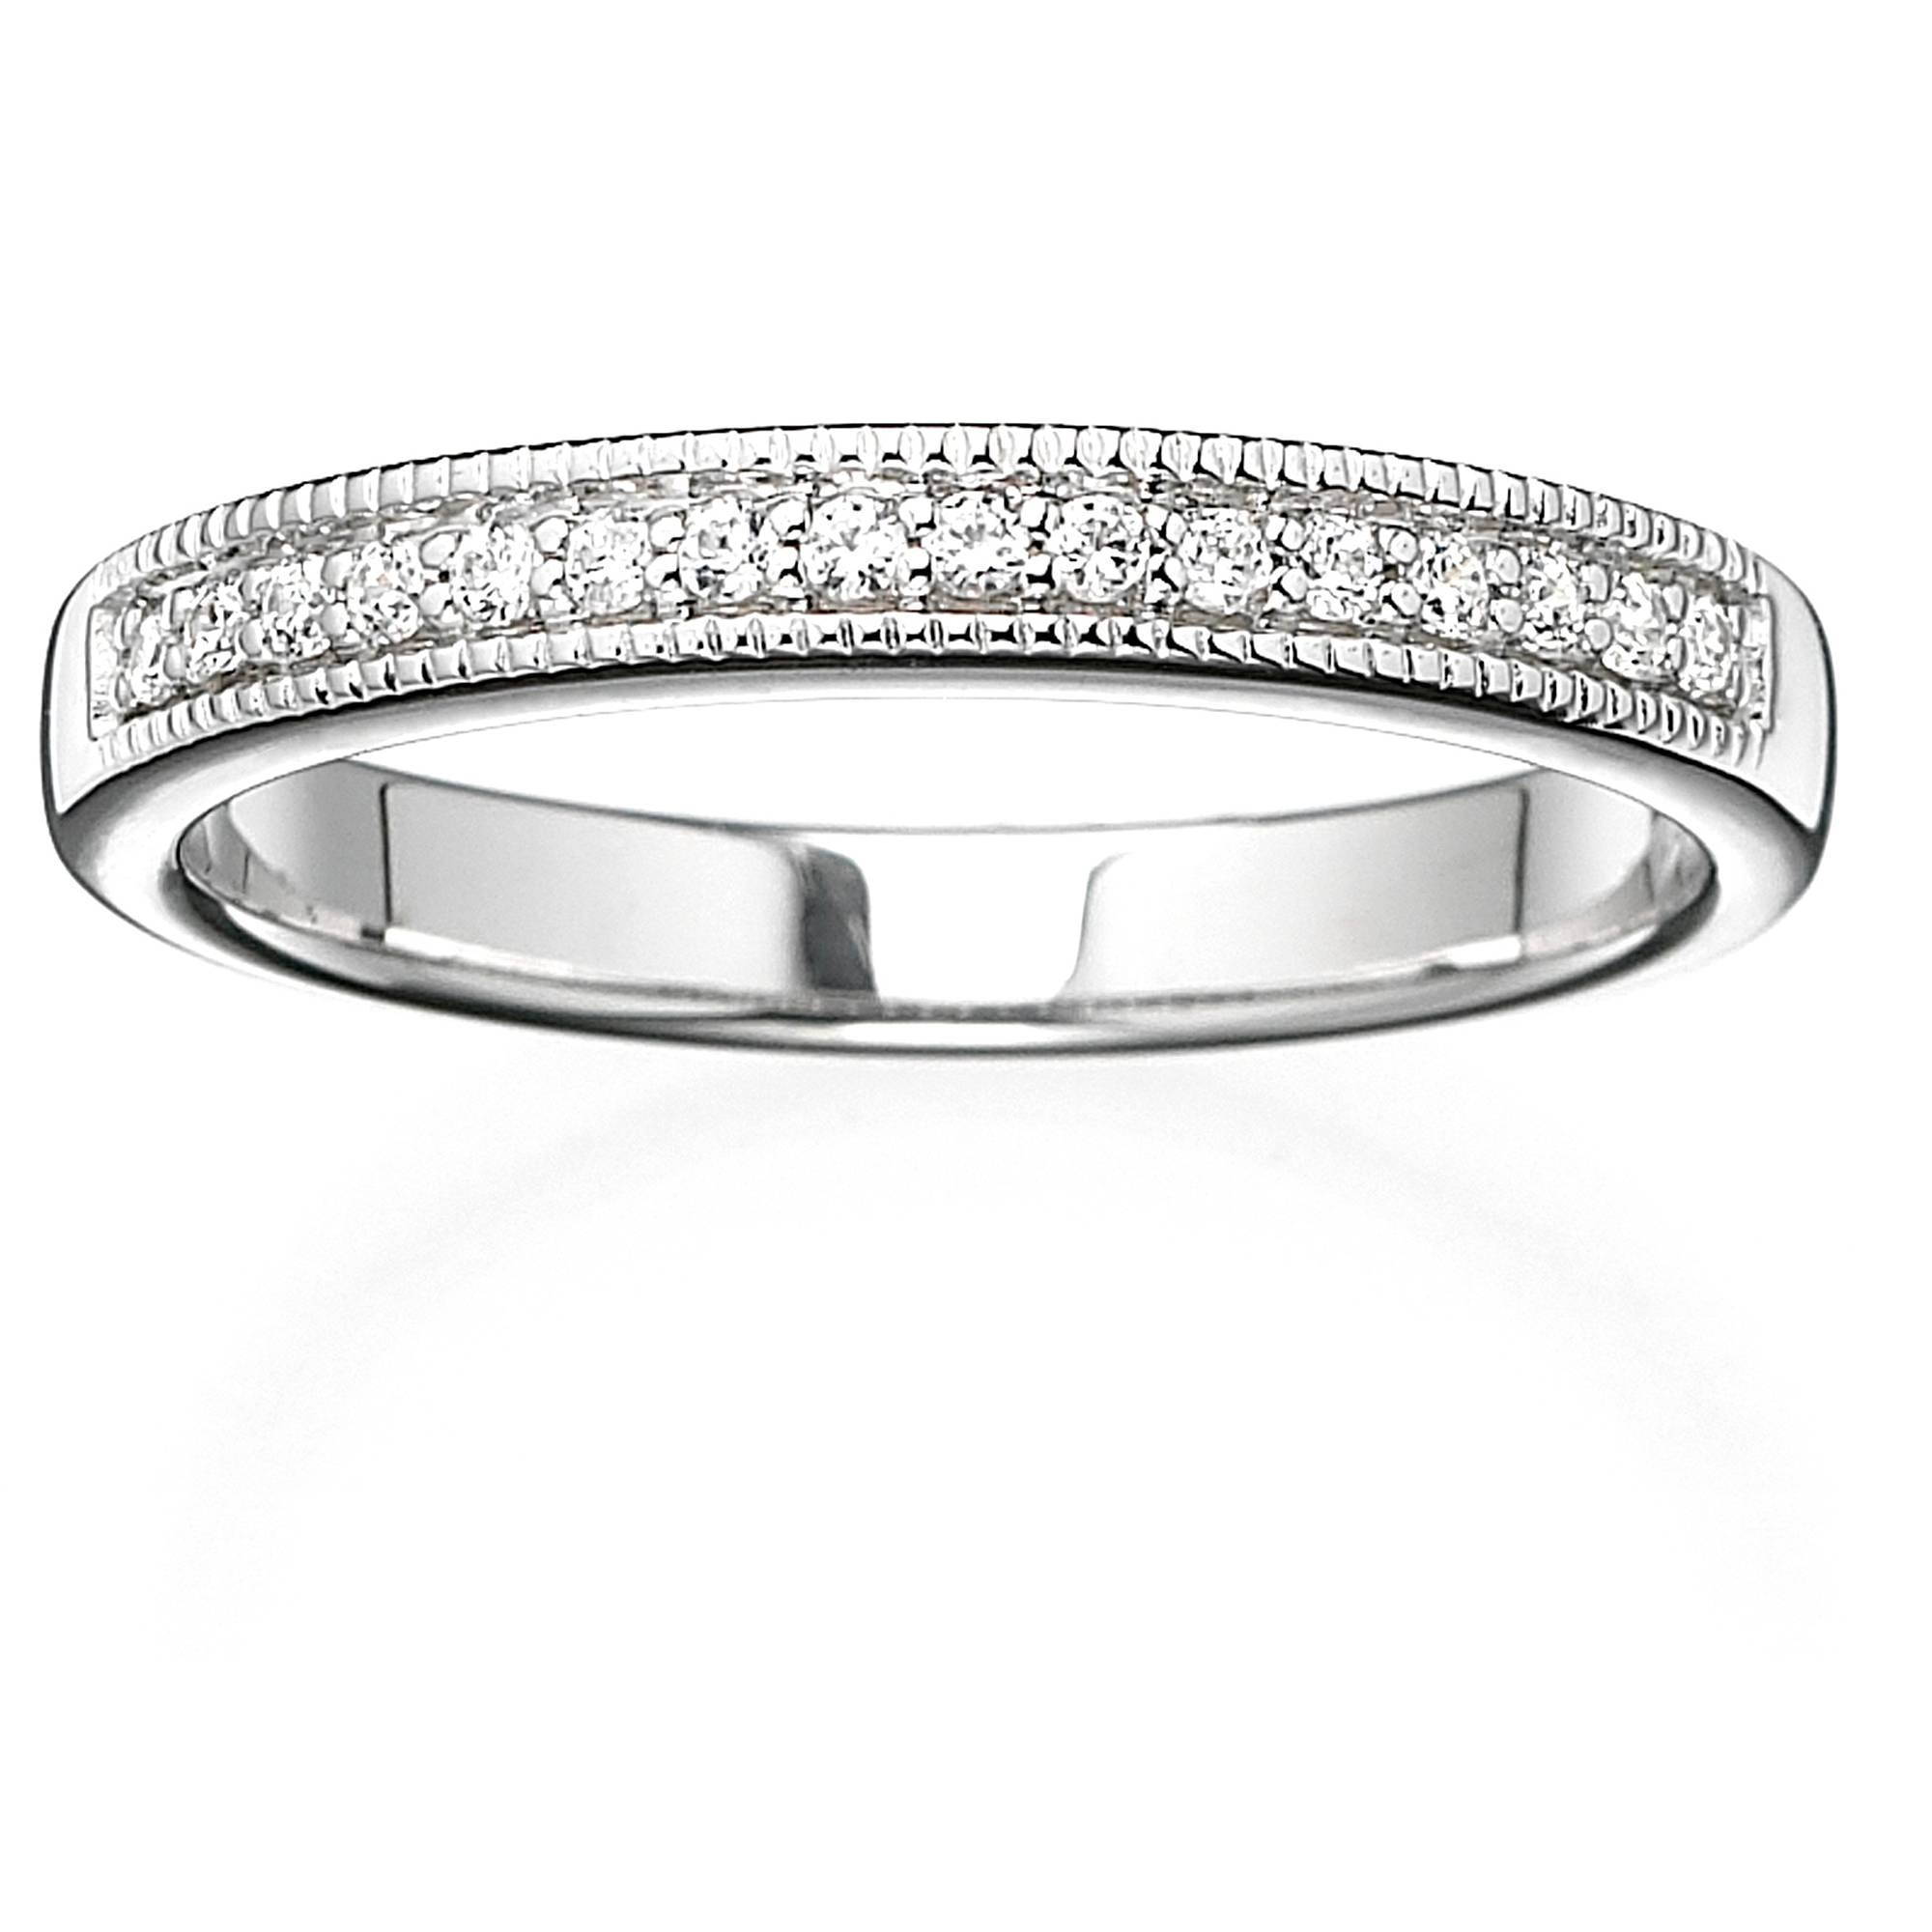 Wedding Rings : Pave Diamond Wedding Band Anniversary Rings Within Current 5 Stone Anniversary Rings (Gallery 20 of 25)